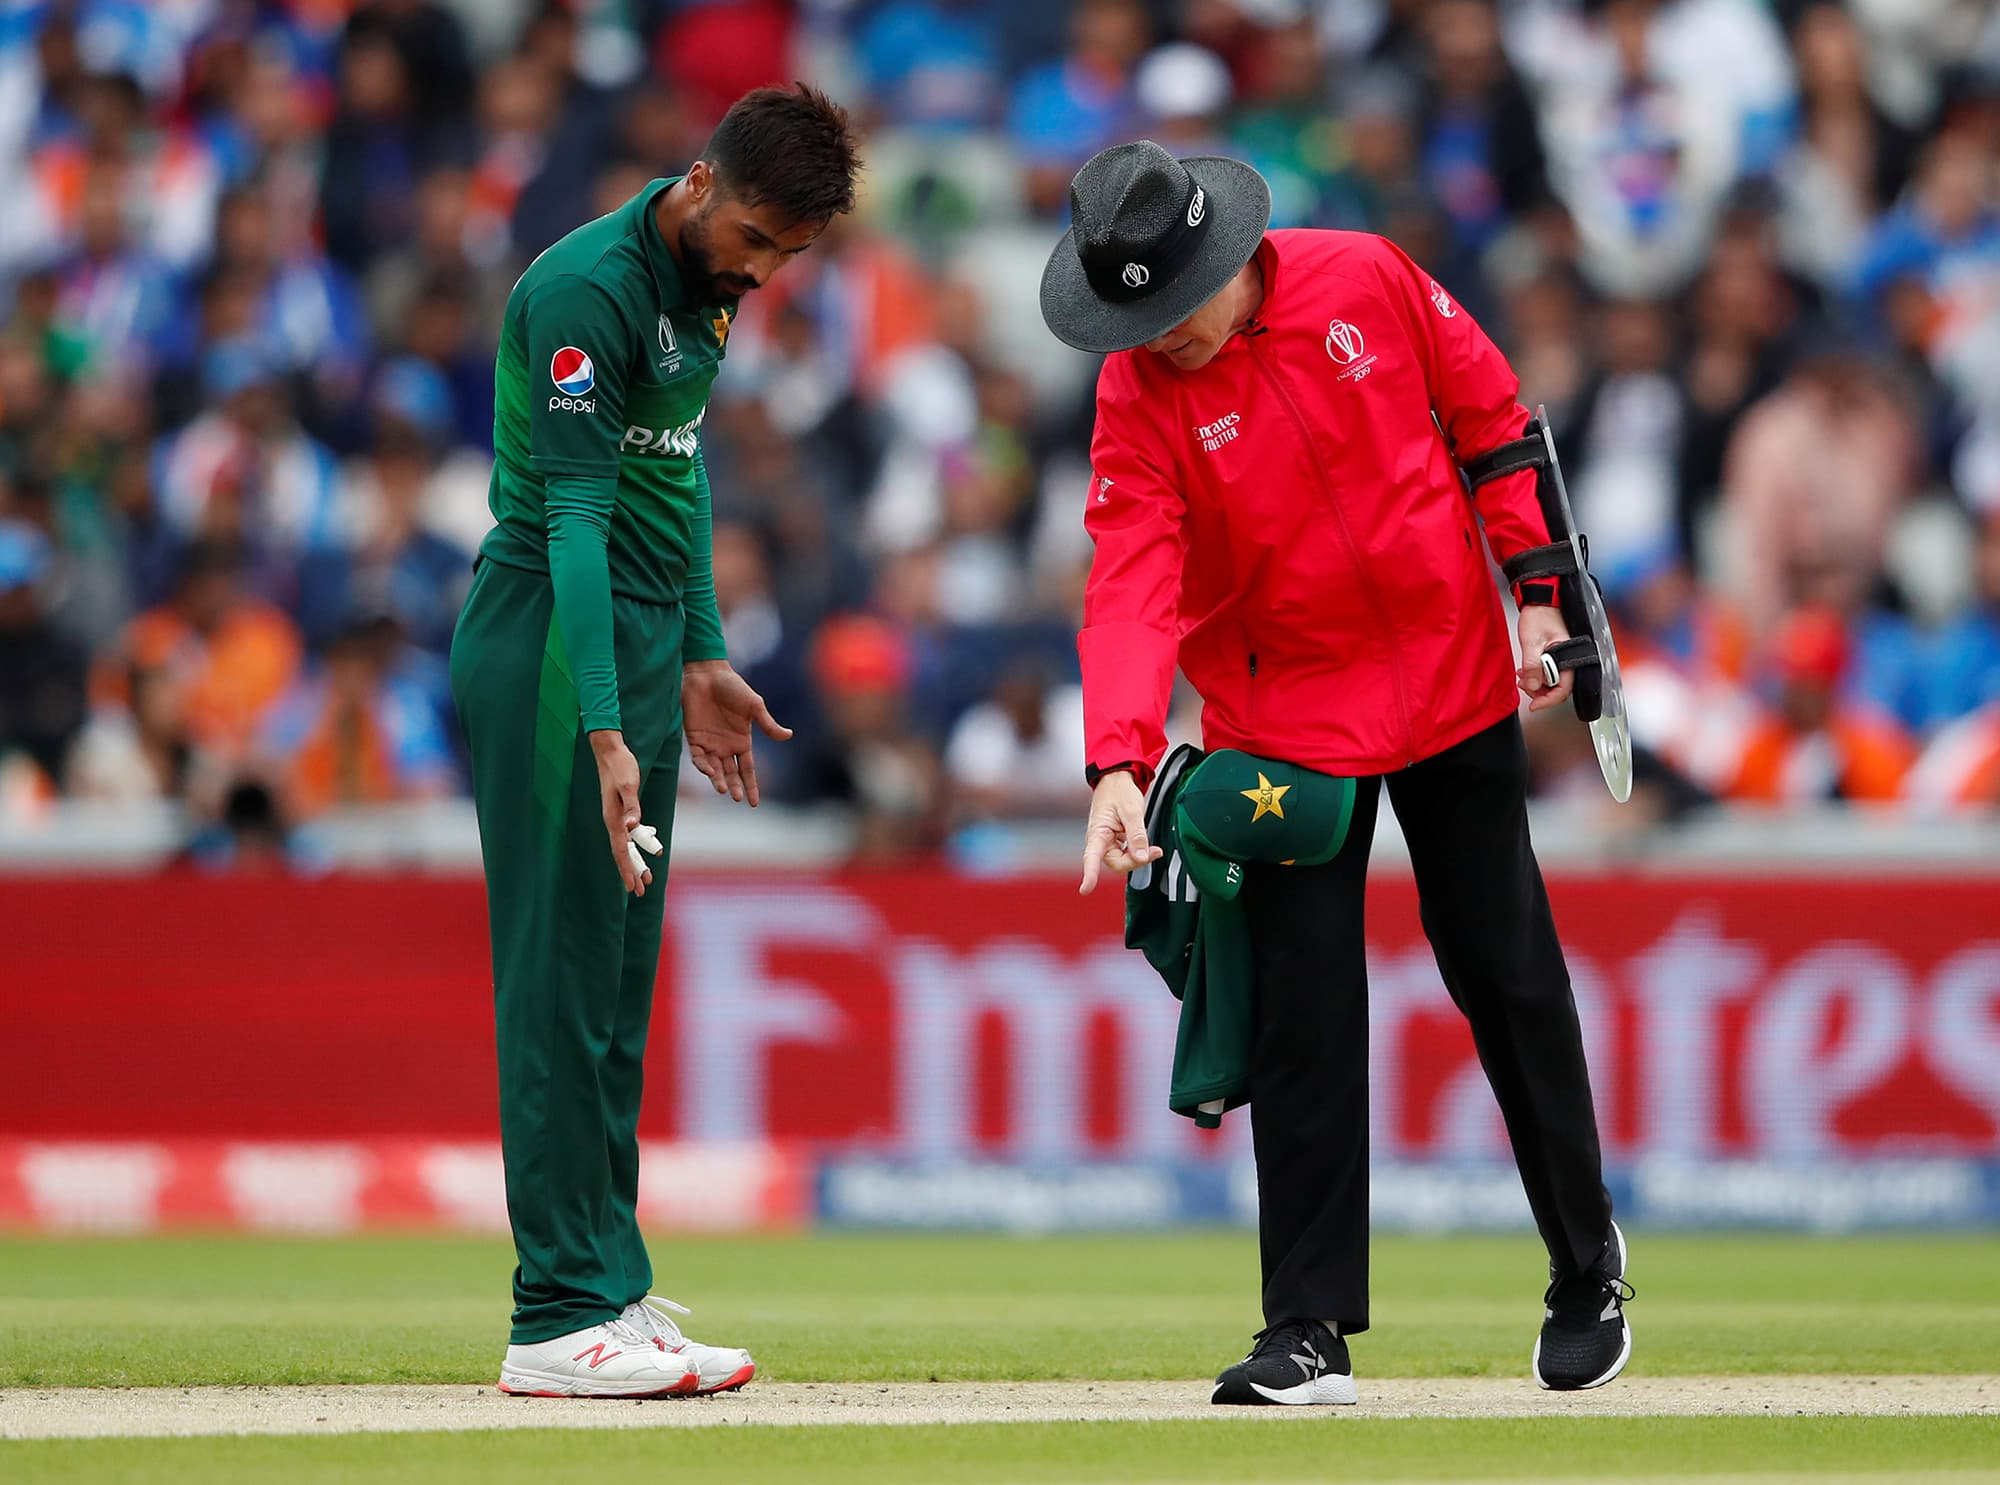 The umpire talks to Mohammad Amir about the crease. ─ Reuters